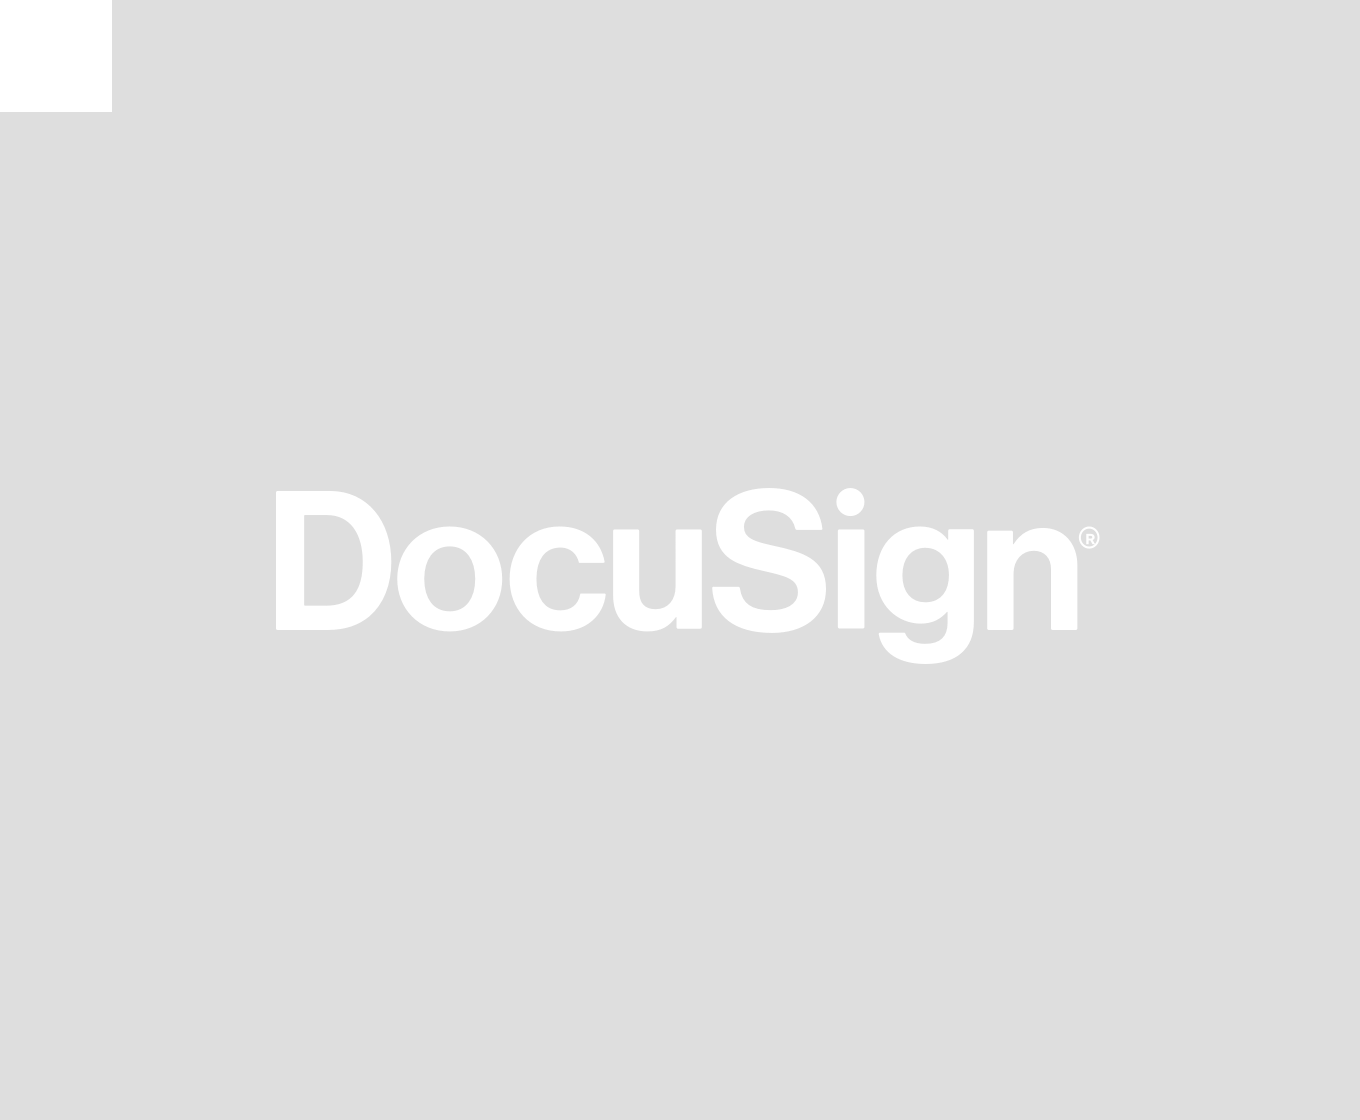 docusign@4x.png